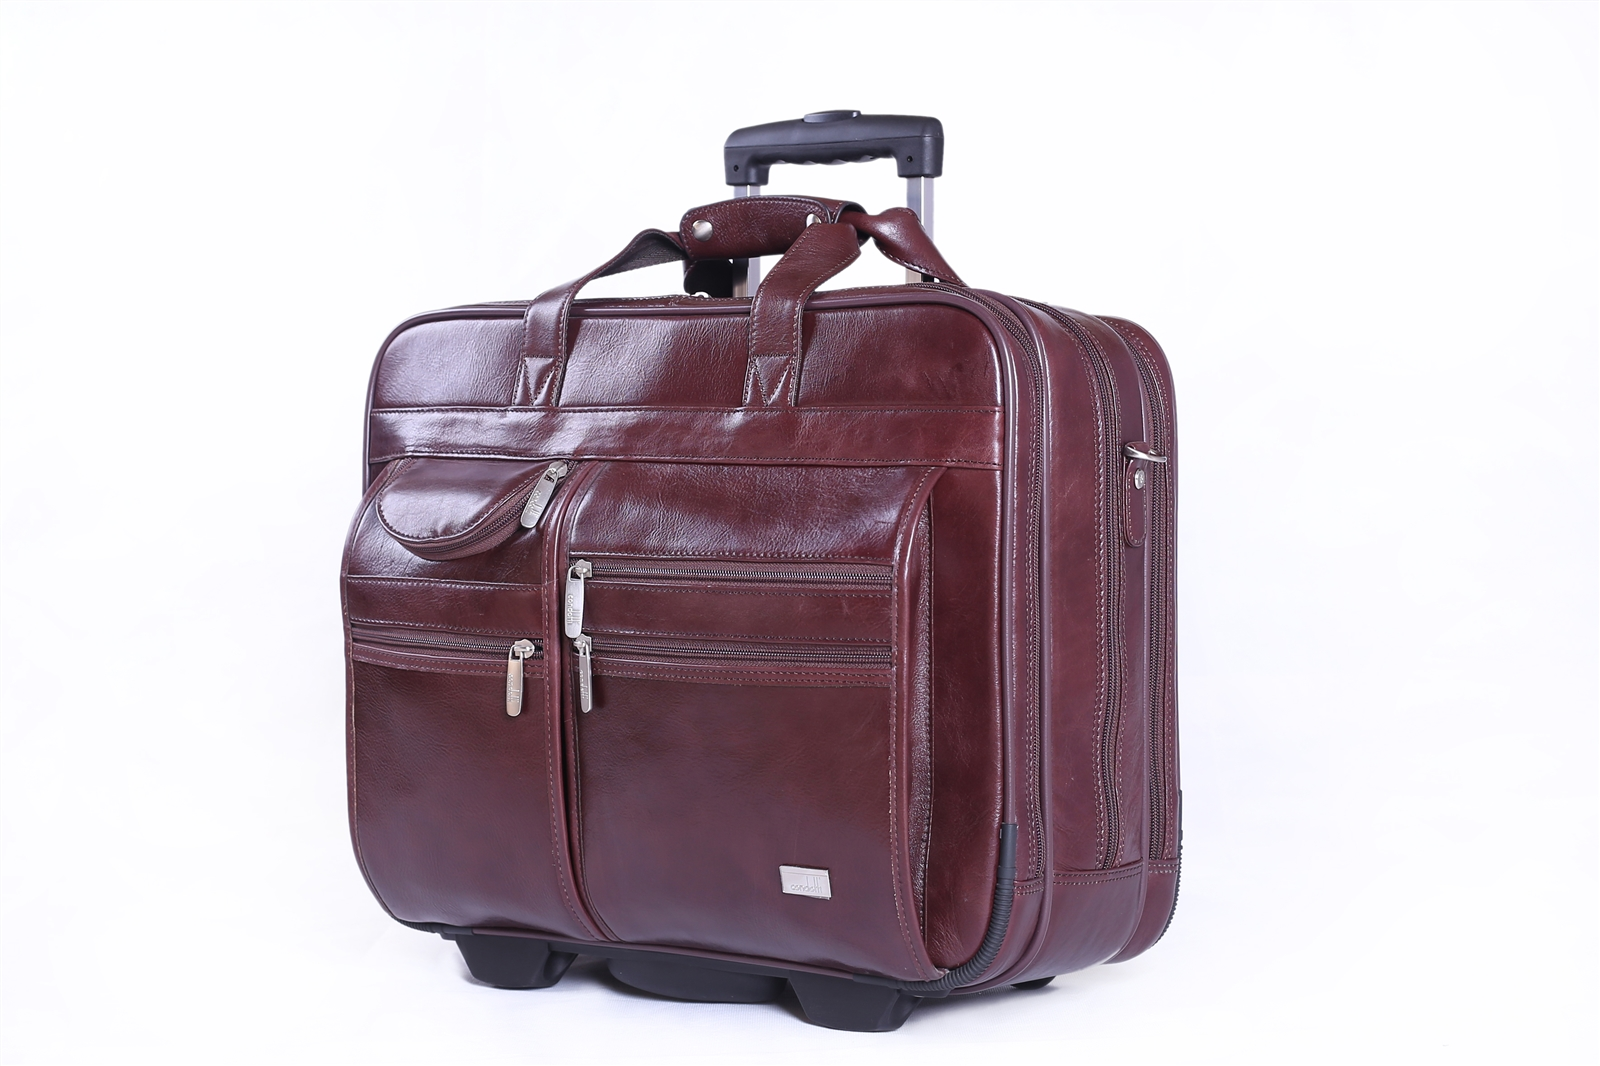 Leather Trolley Case - CODE 137-0845